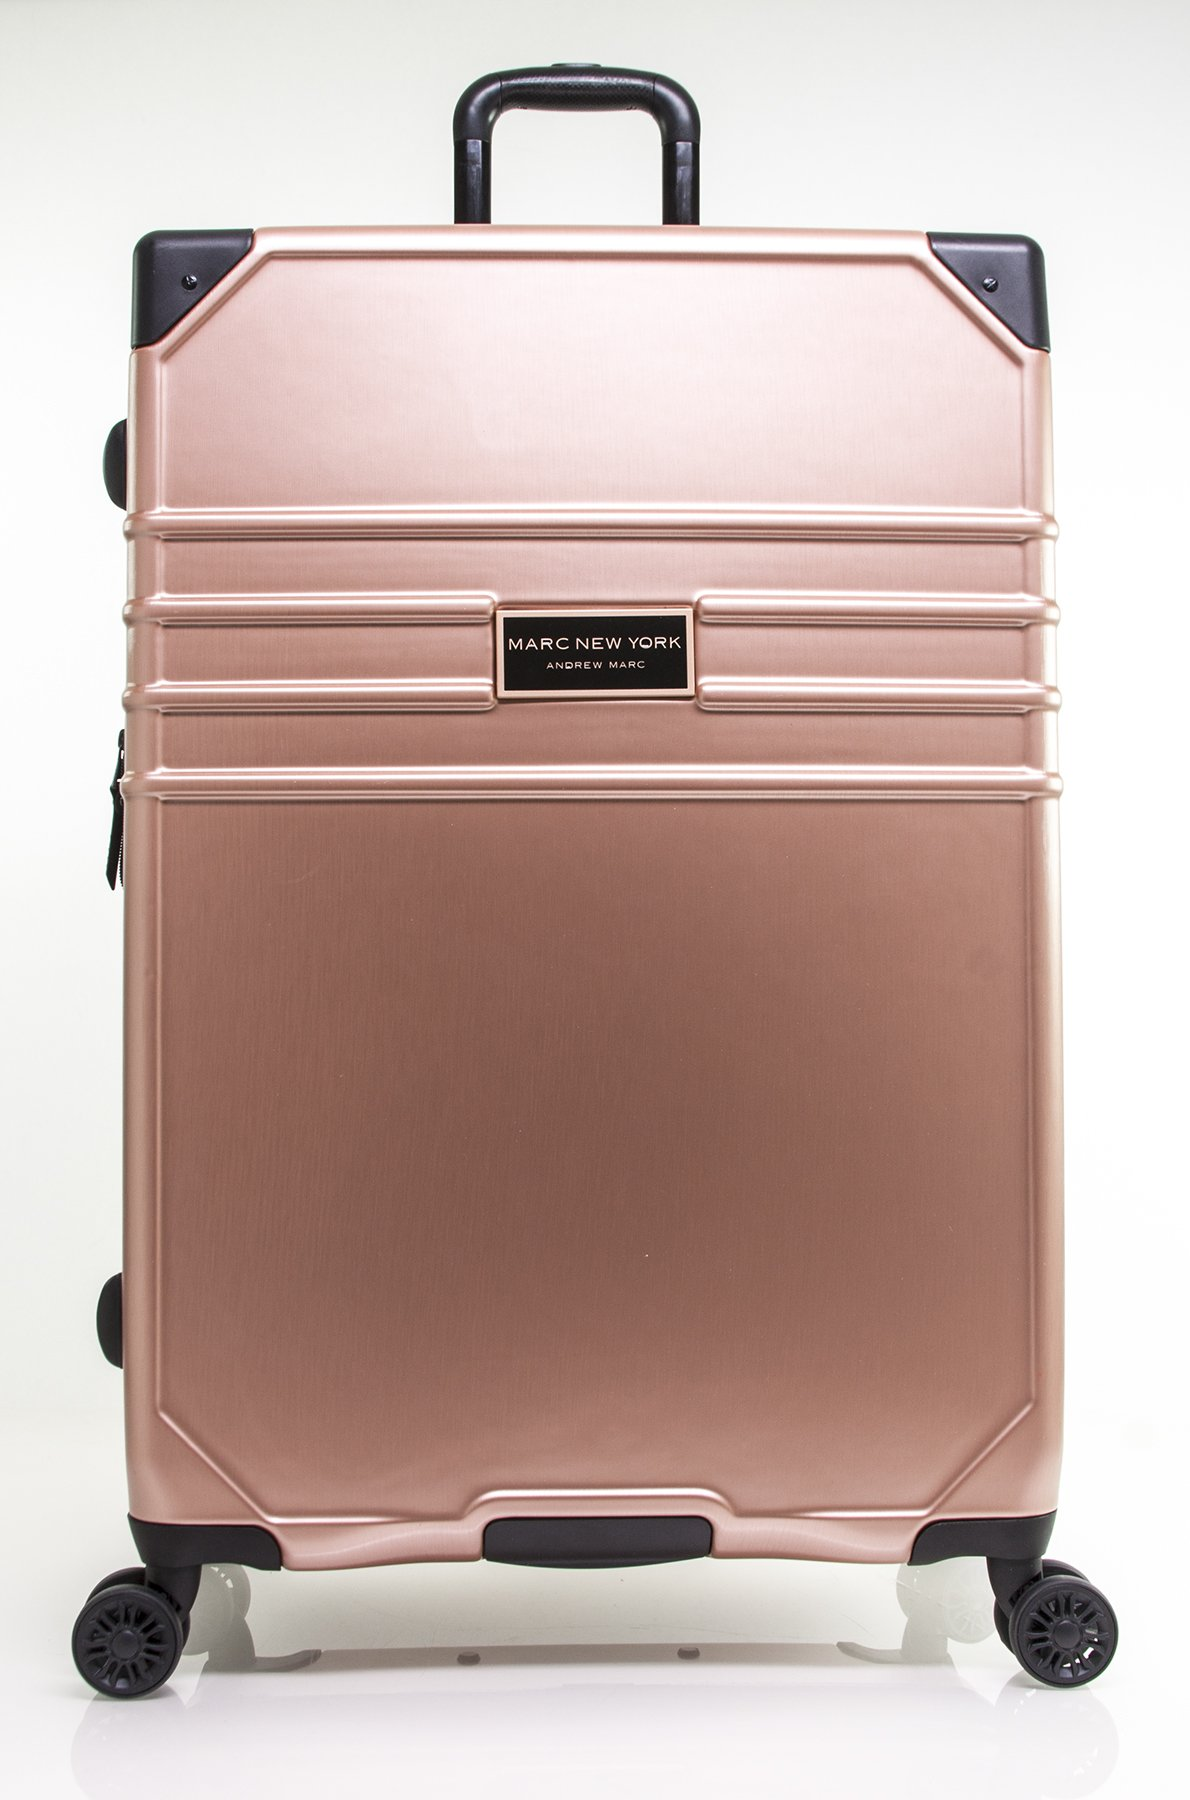 MARC NEW YORK Classic 28'' Expandable Hardside Spinner, Rose Gold